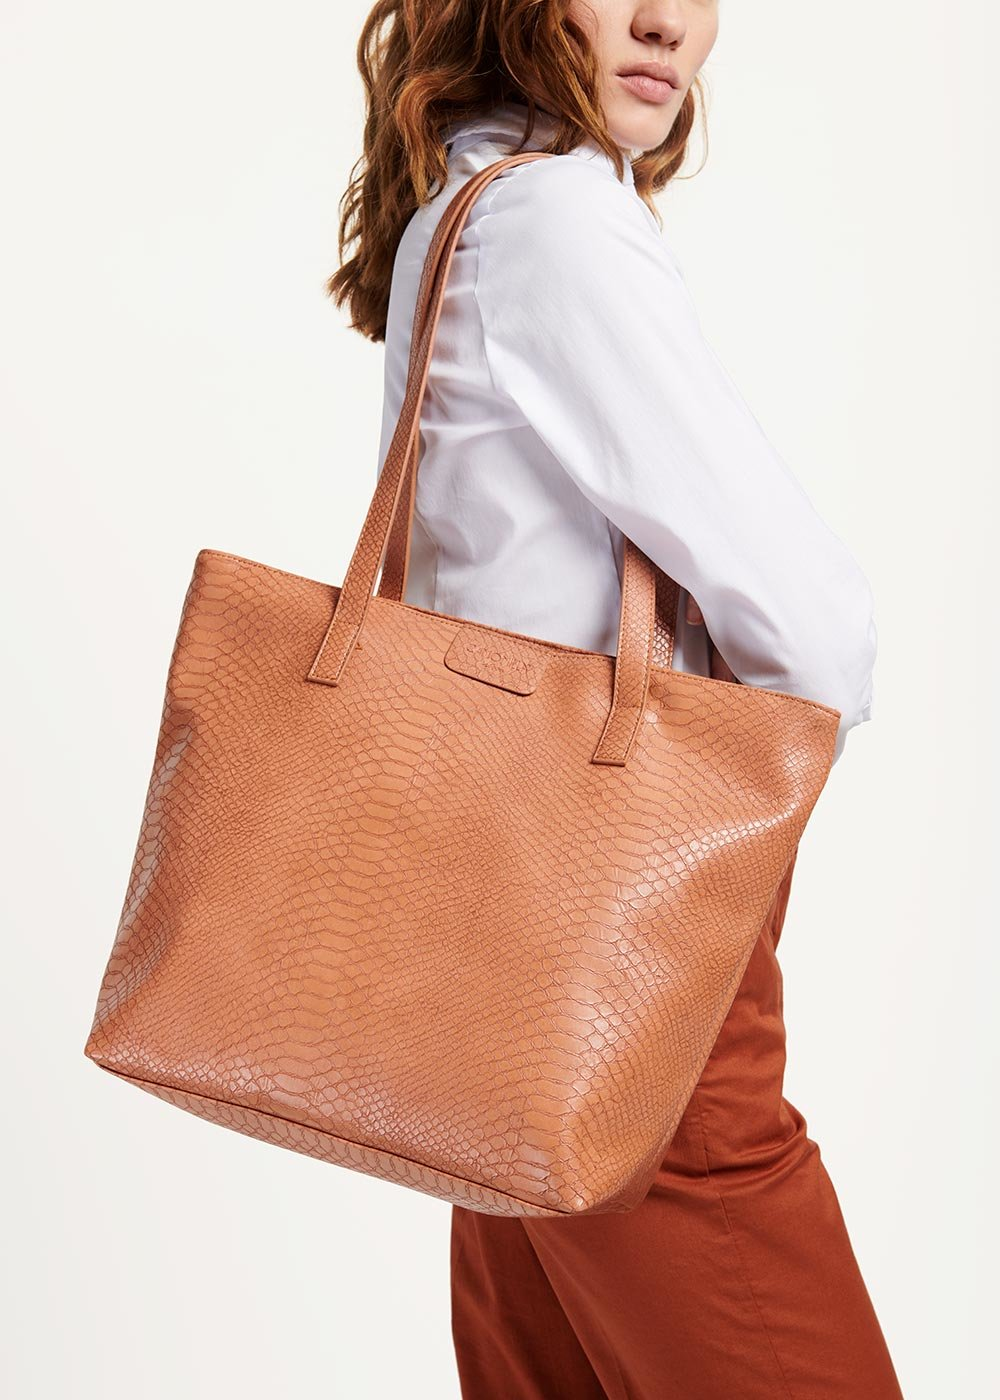 Badia shopping bag - Sughero - Woman